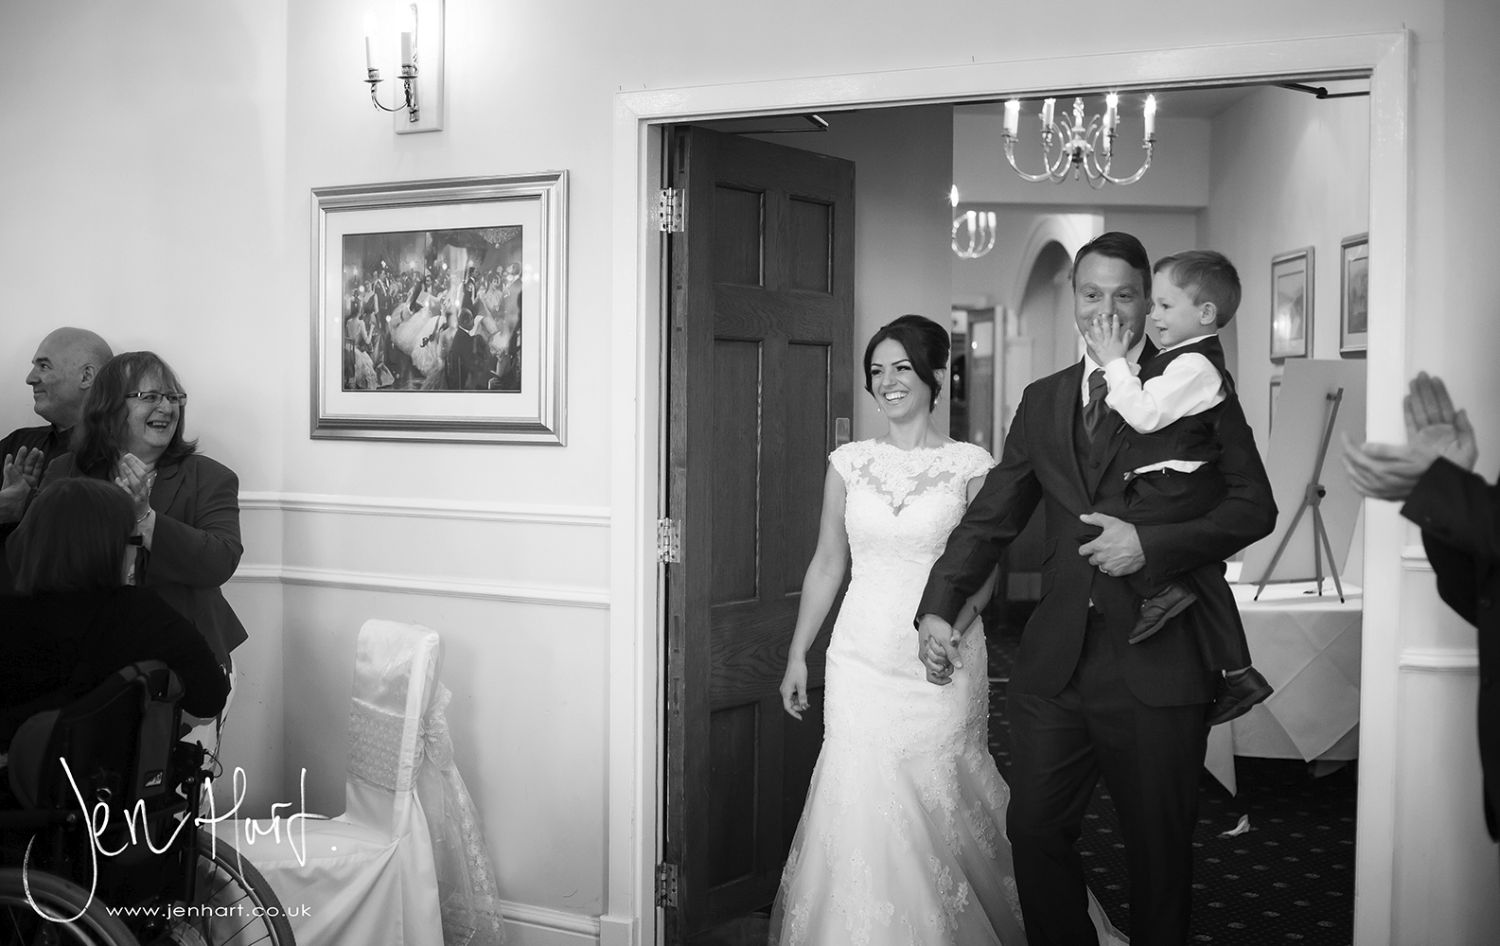 Photograph_Grinkle_Park_Wedding_Andrea&Rob_28JUN14_191_34